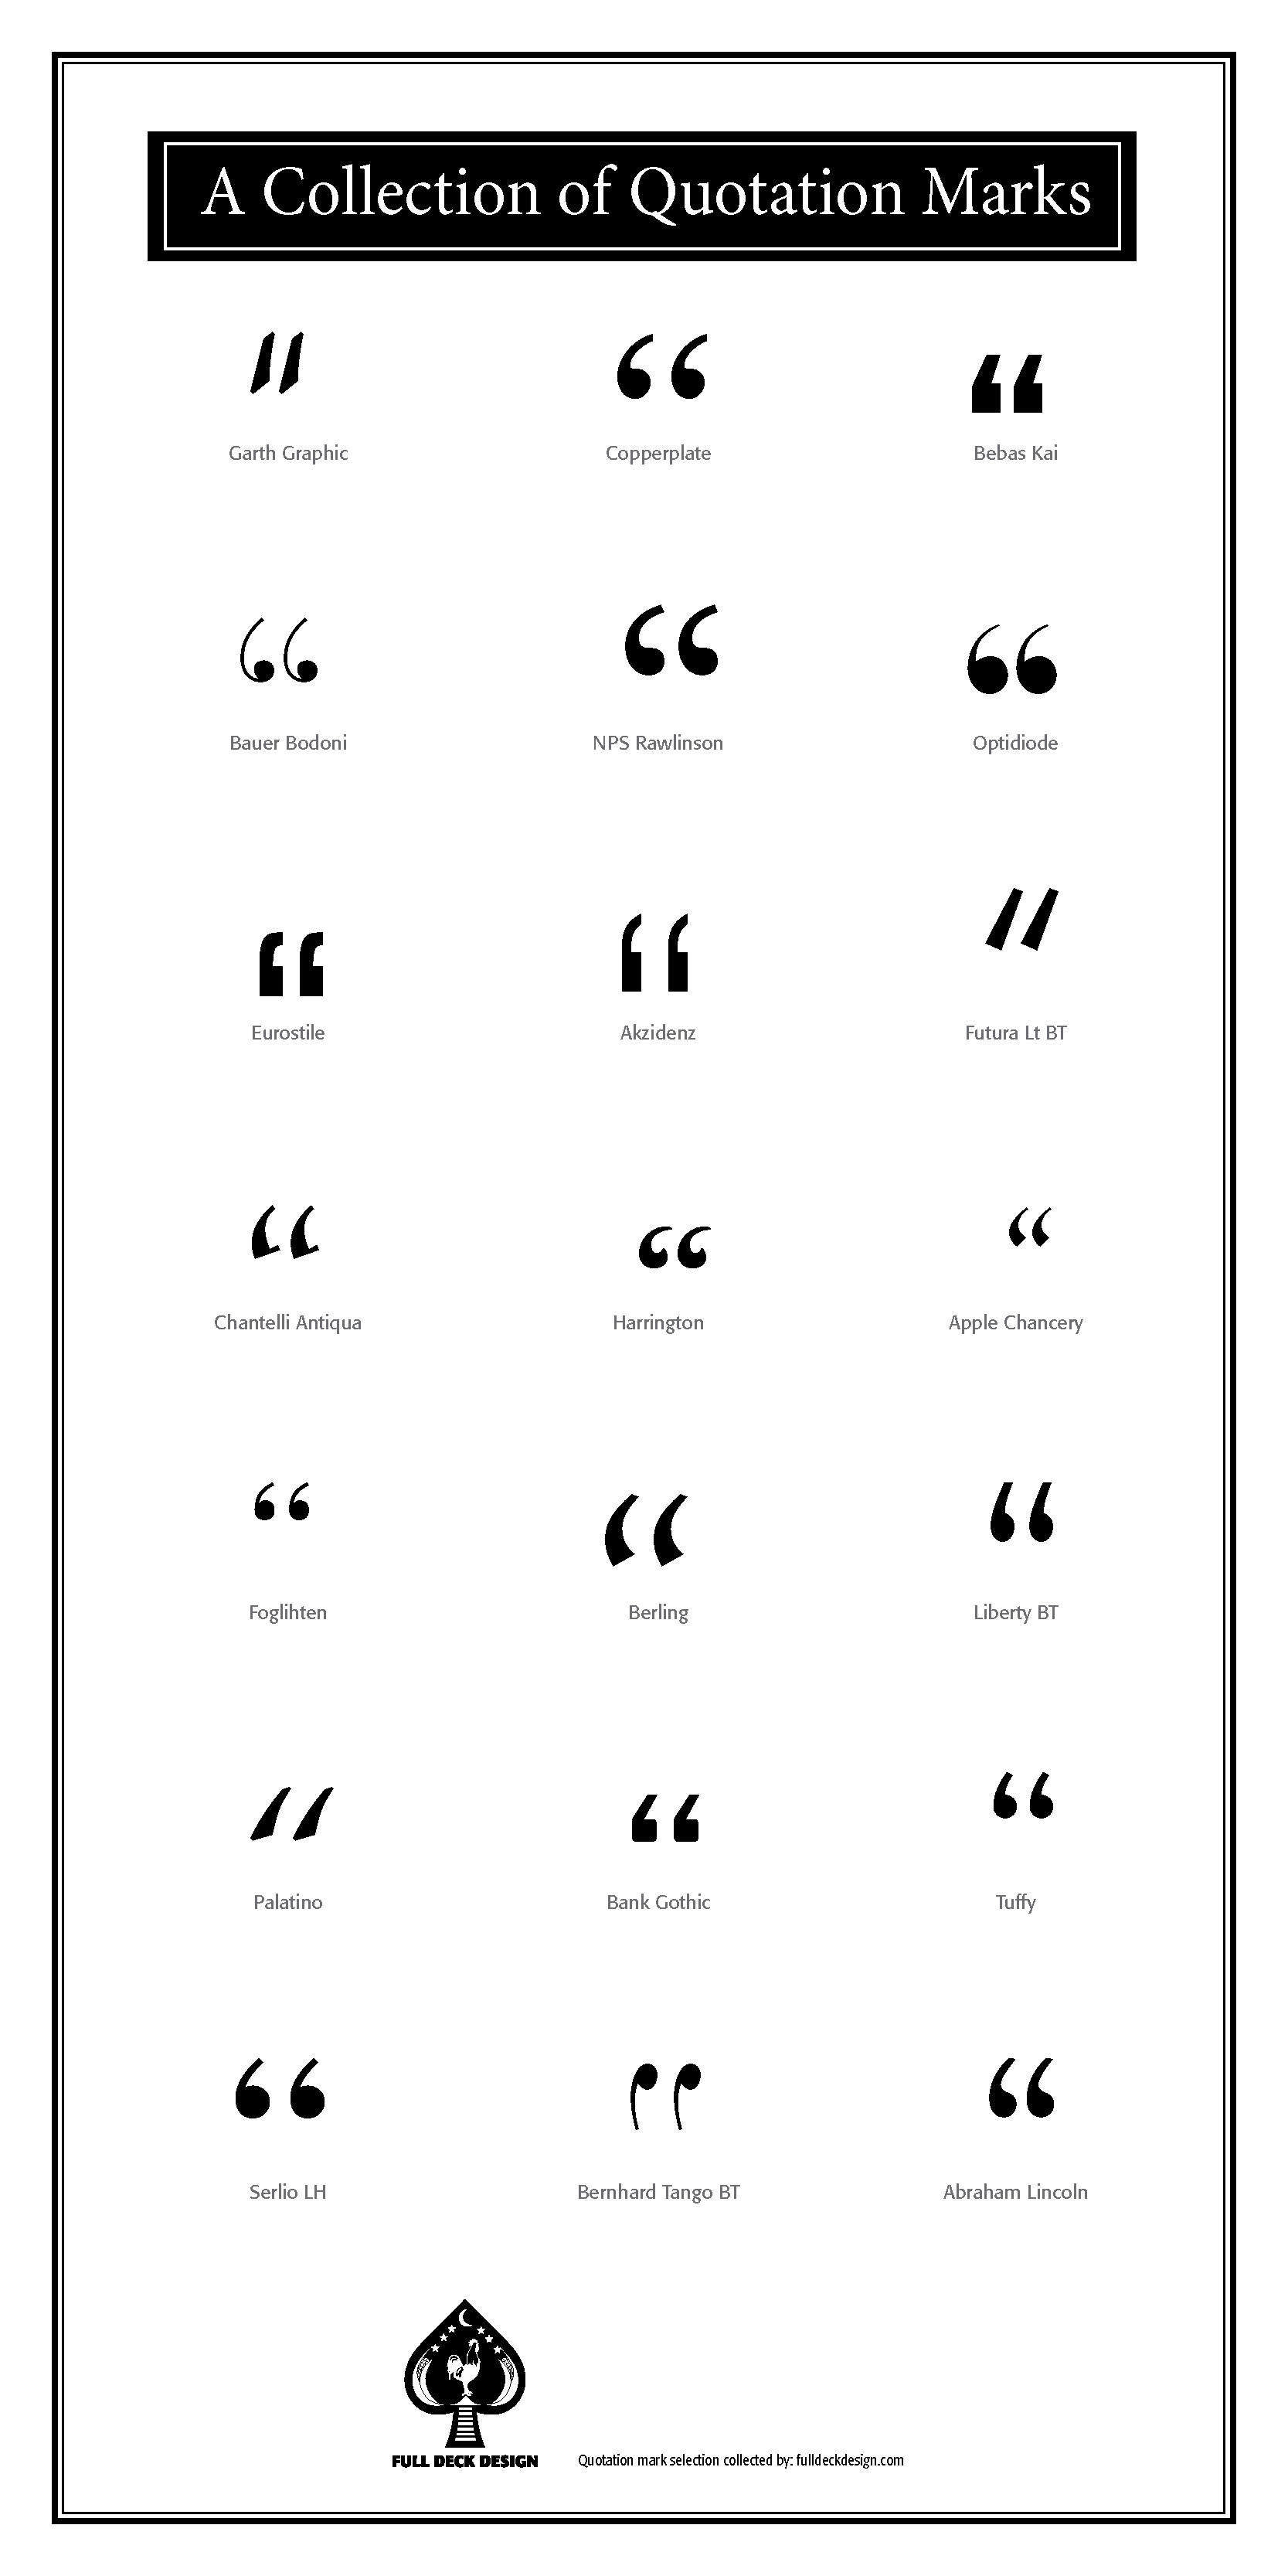 Collection of quotation mark designs full deck design a collection of quotation marks altavistaventures Image collections